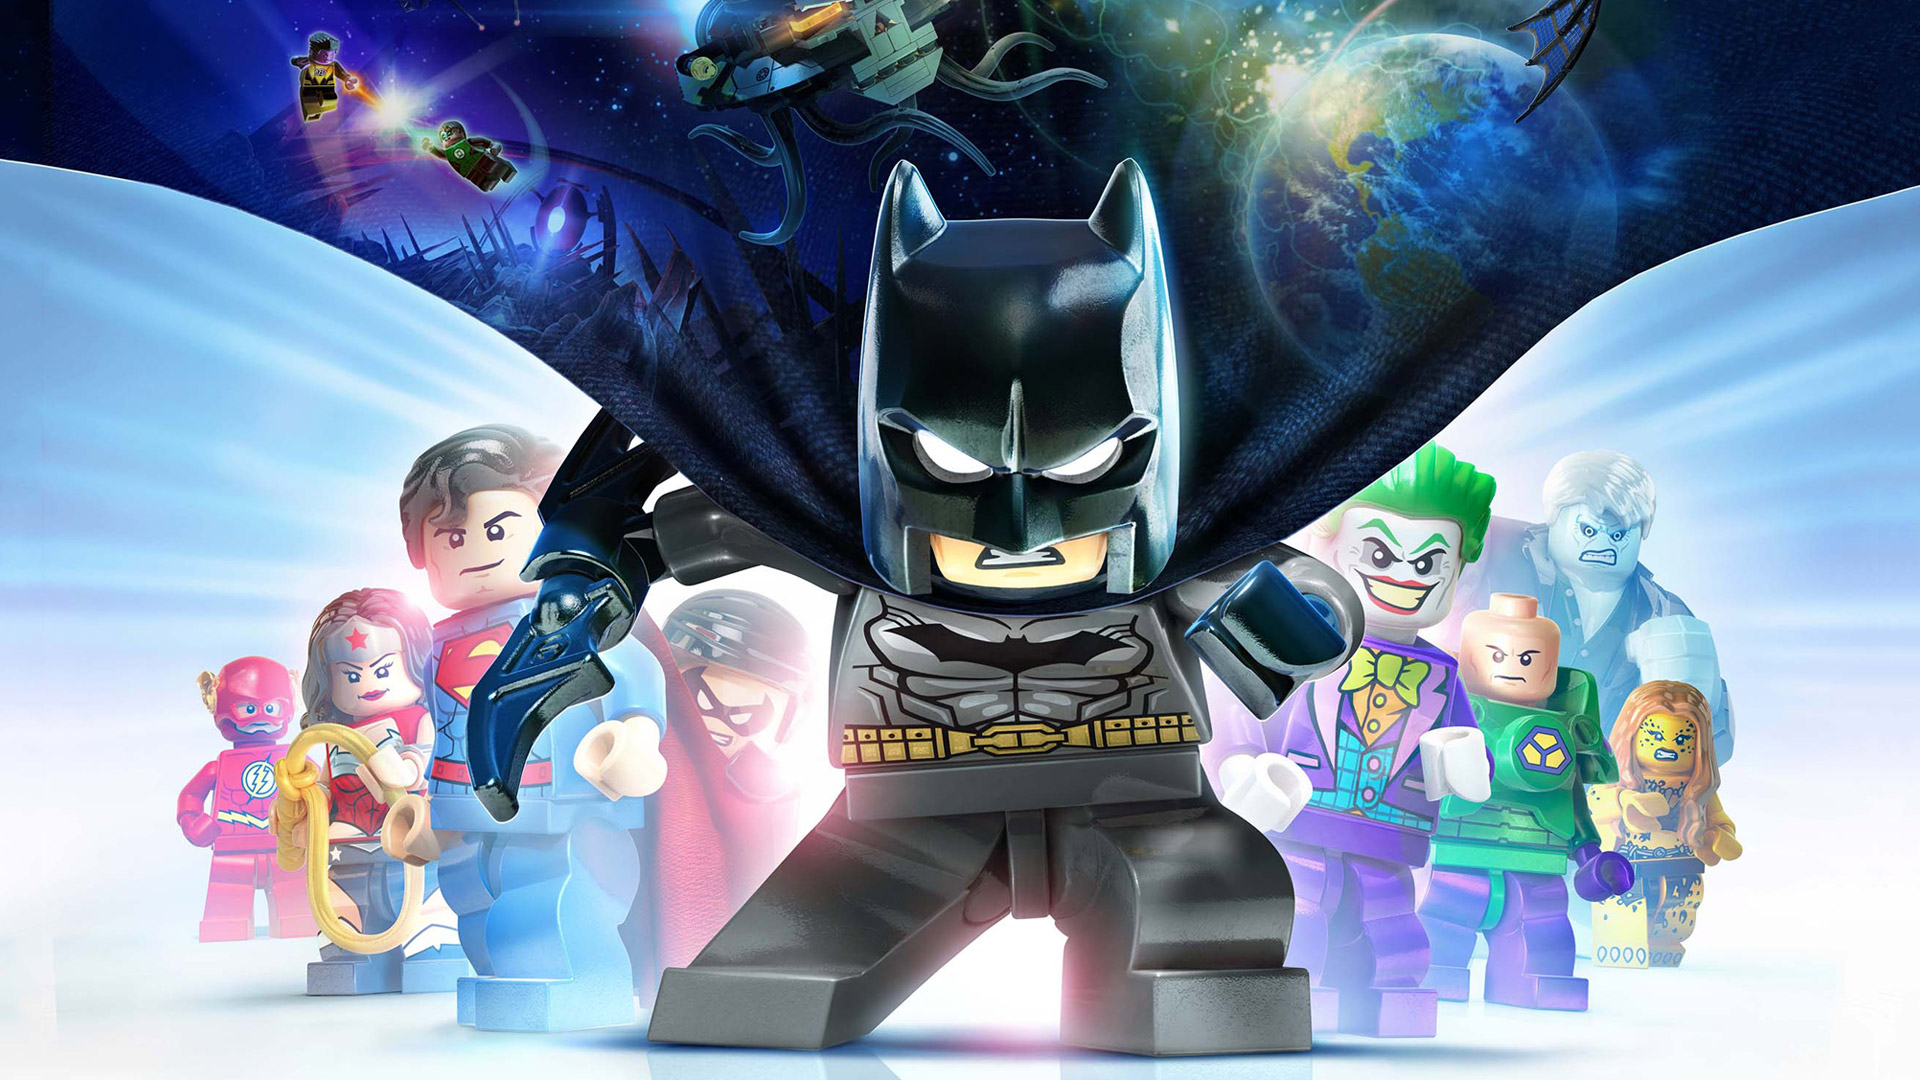 Free Lego Batman 3: Beyond Gotham Wallpaper in 1920x1080